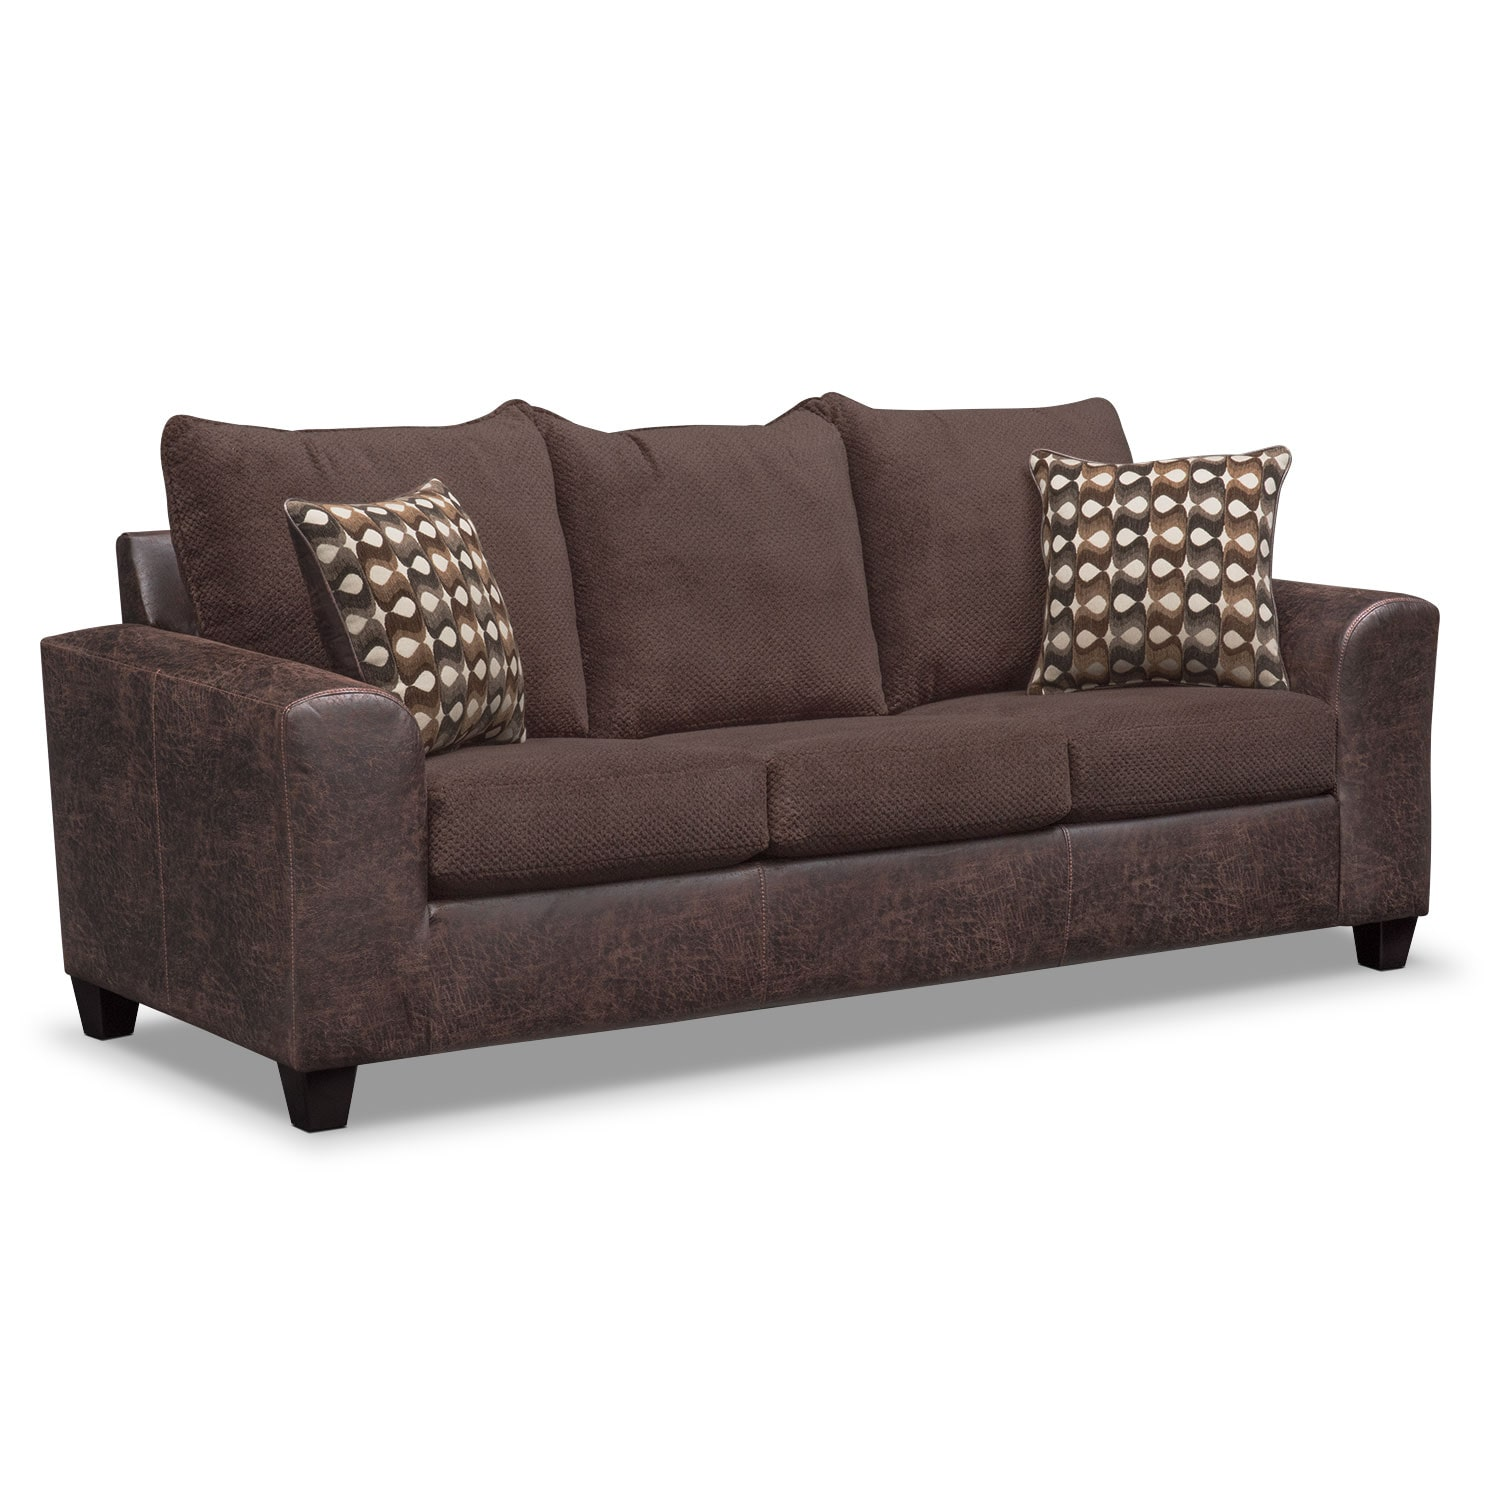 Brando sofa chocolate american signature furniture for Signature furniture